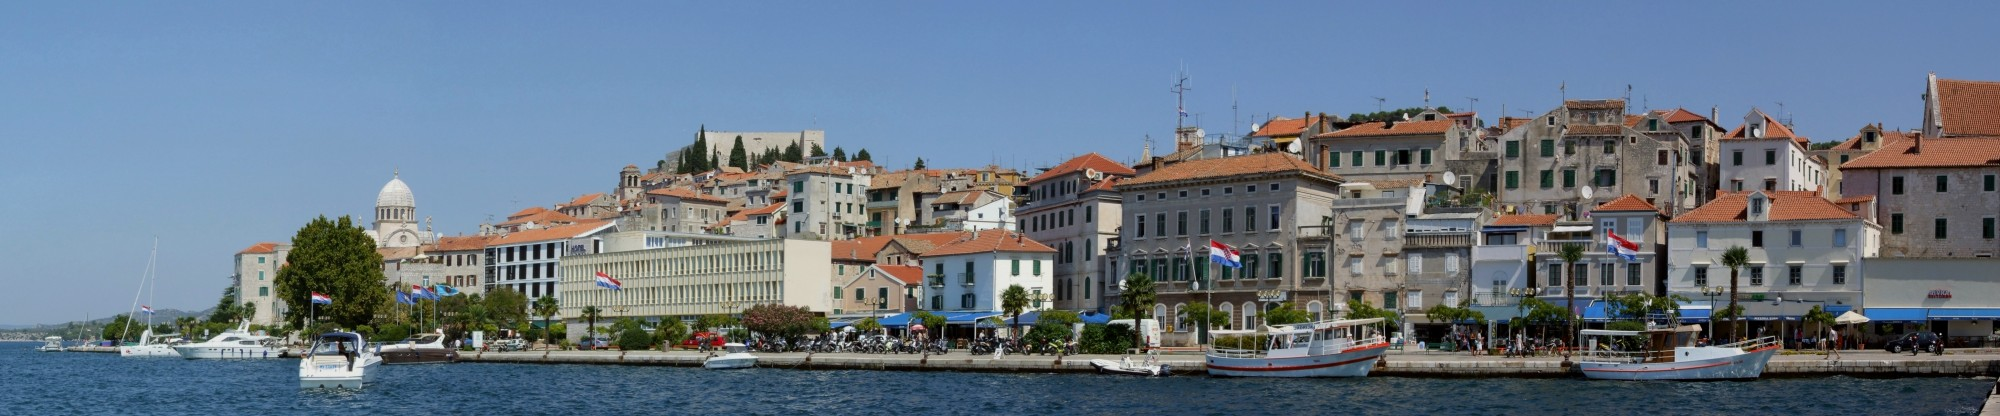 Šibenik harbour - panorama